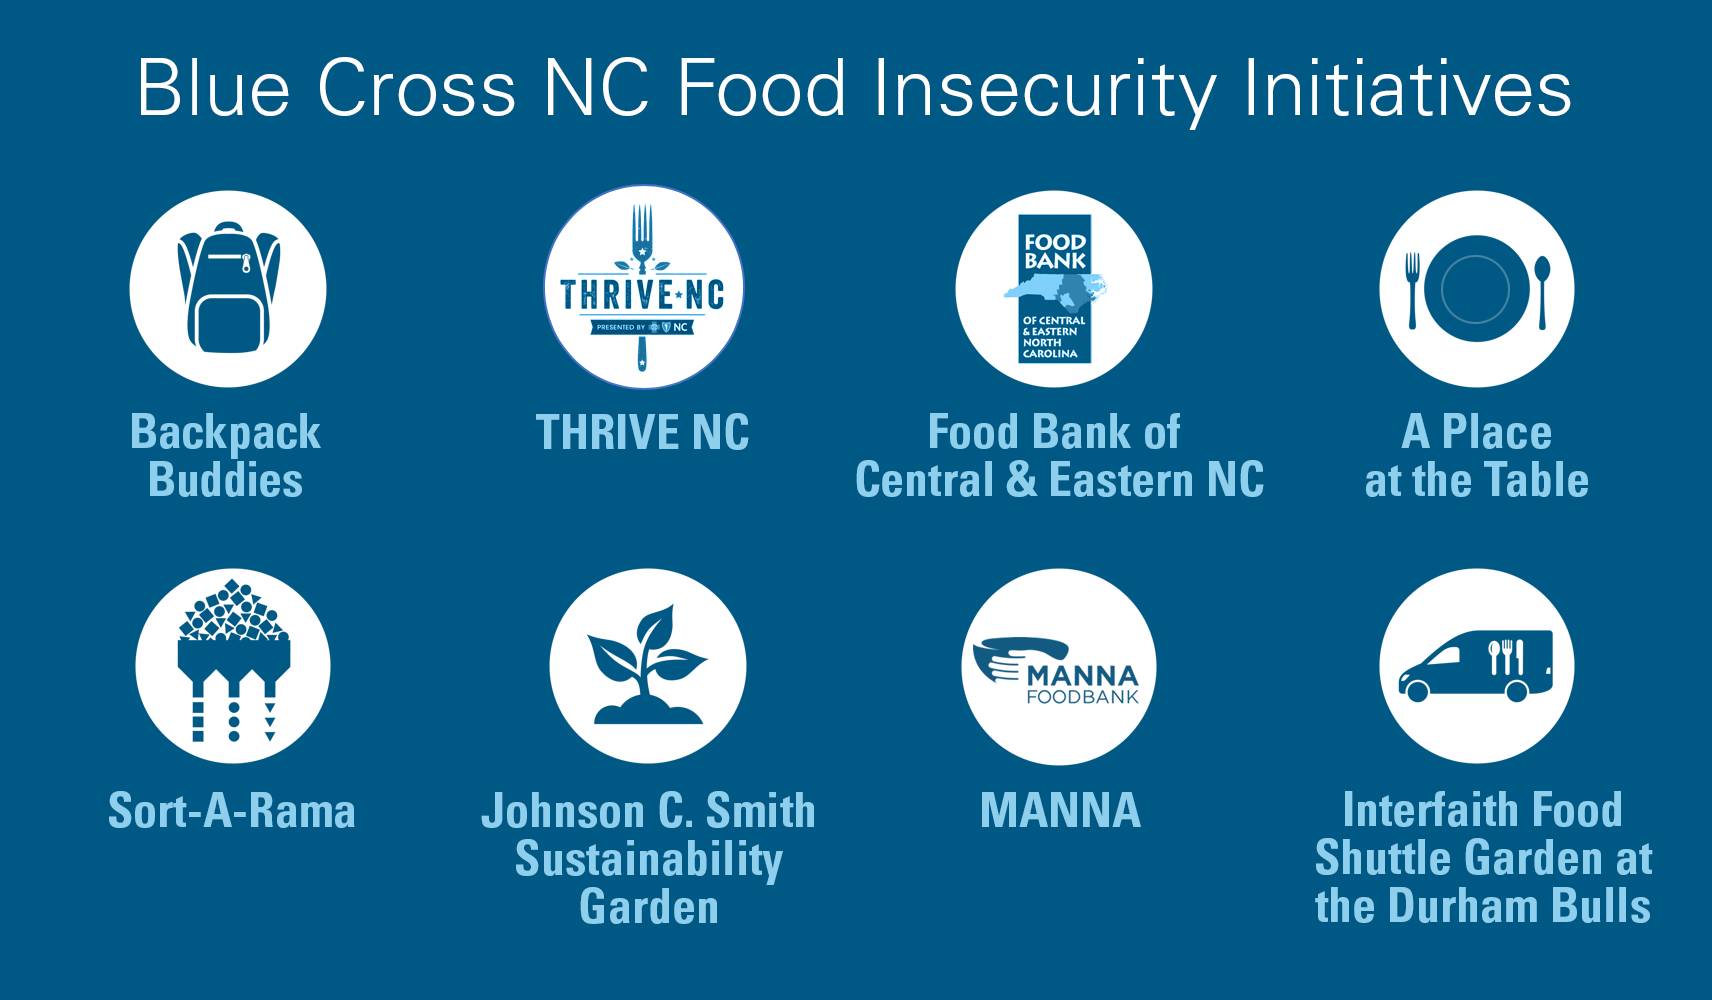 Blue Cross NC Food Insecurity Initiatives